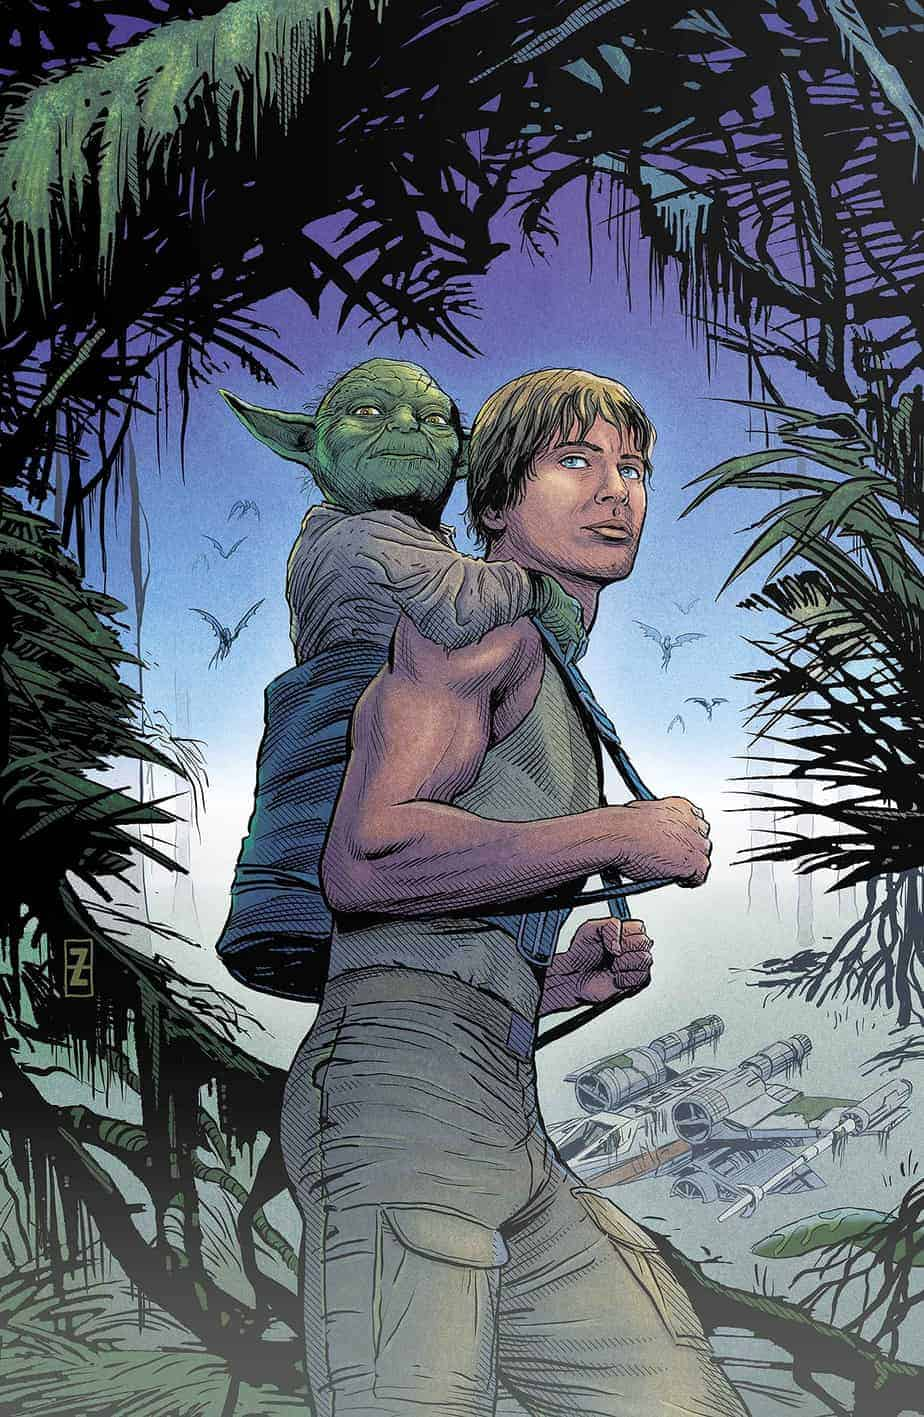 STAR WARS AGE OF RESISTANCE SPECIAL #1 - Cover B